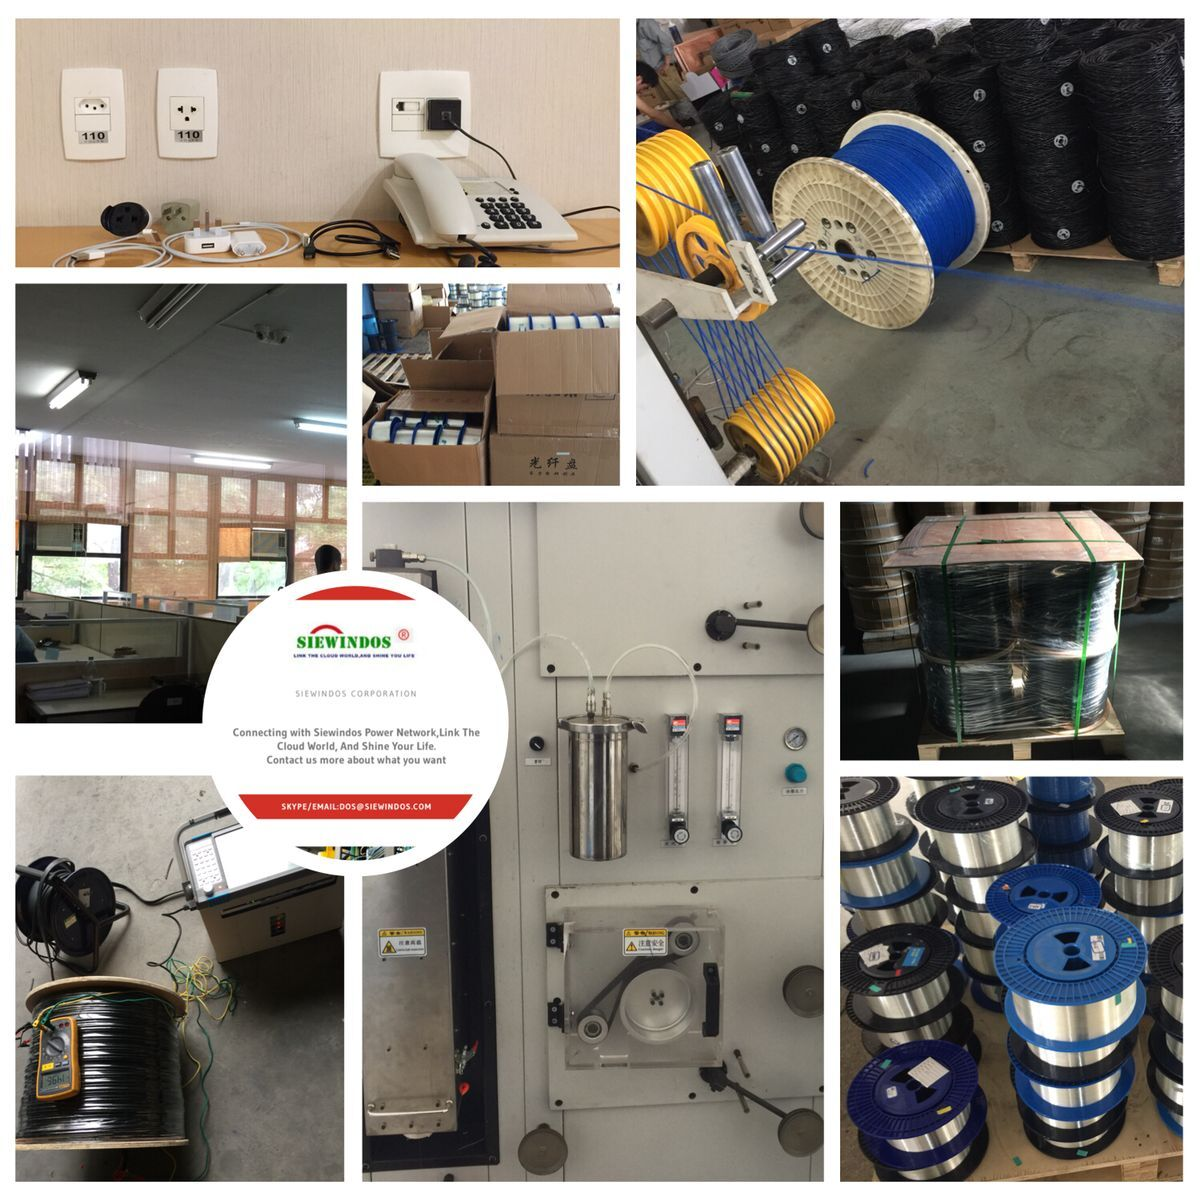 Siewindos Shine Telephone drop wire for telecom system Telephone drop wire Product Classification